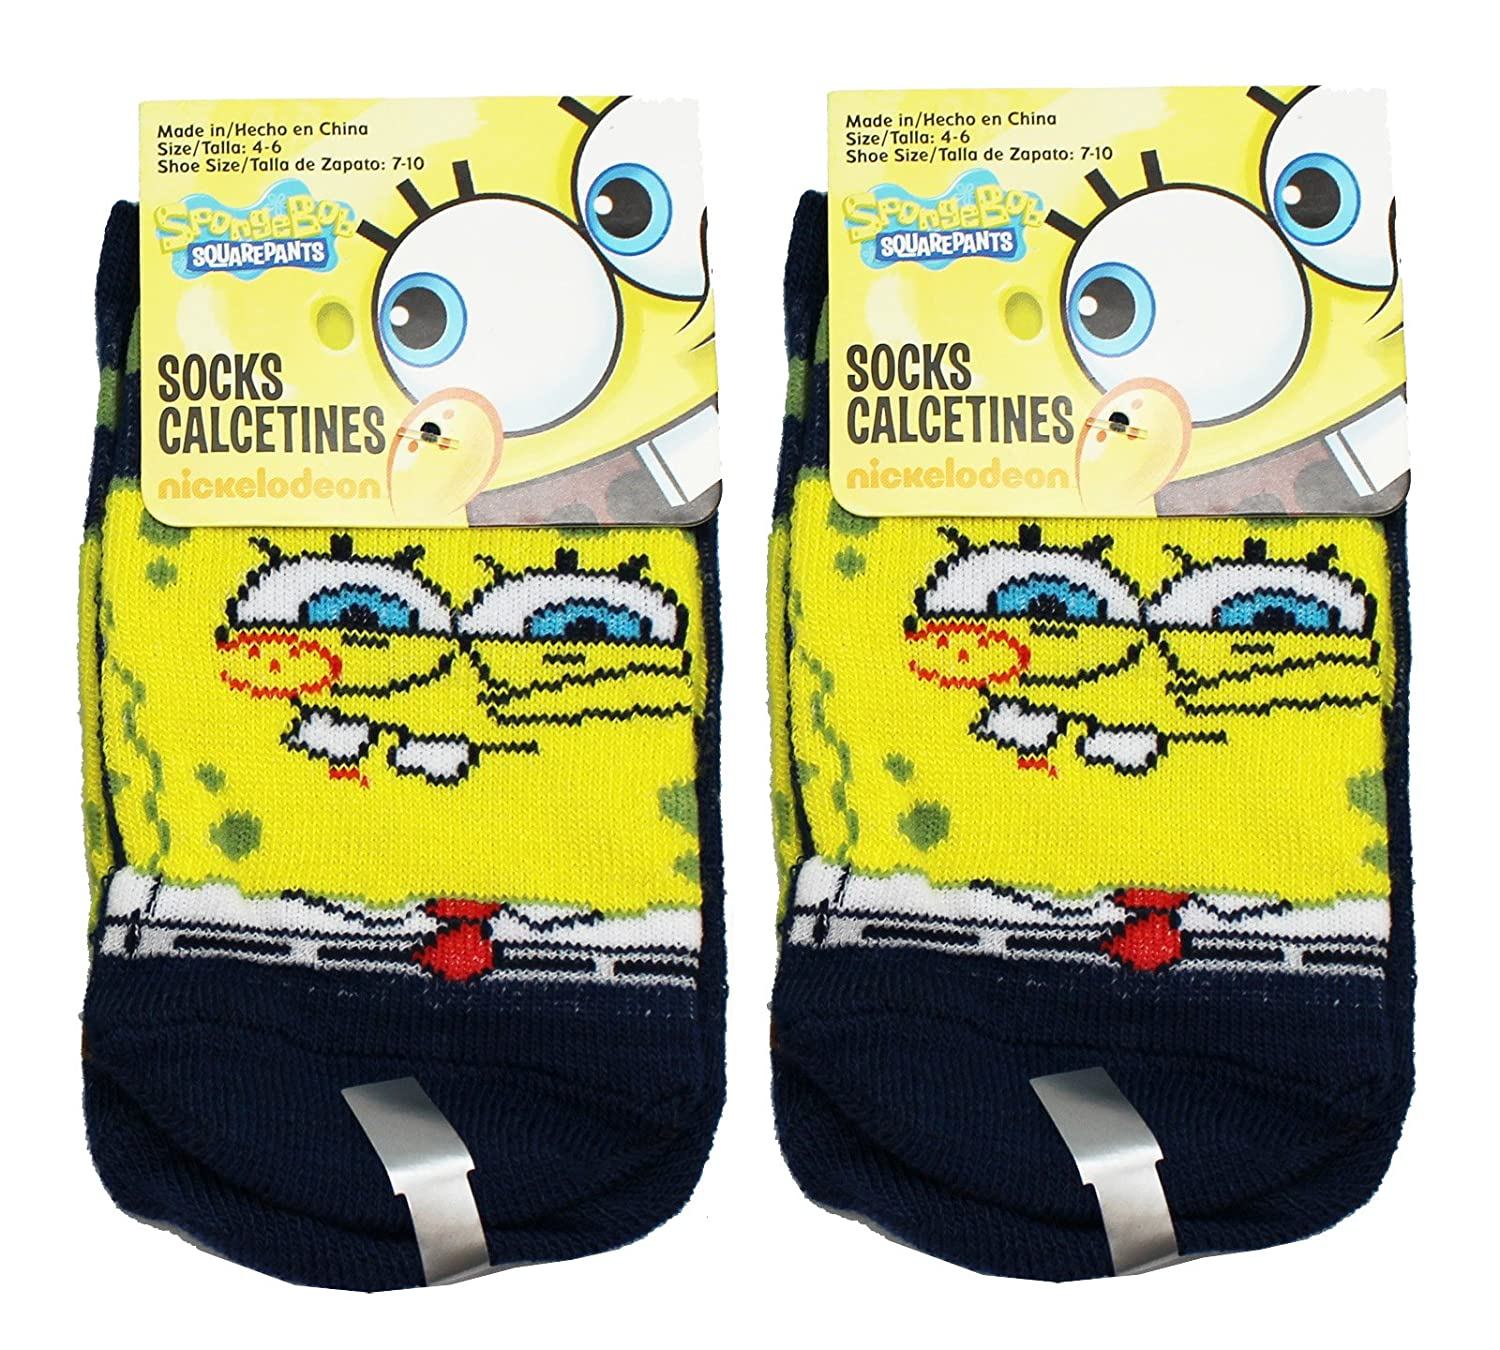 Amazon.com: Spongebob Squarepants Navy Blue Excited Smile Kids Socks (Size 4-6, 2 Pairs): Clothing